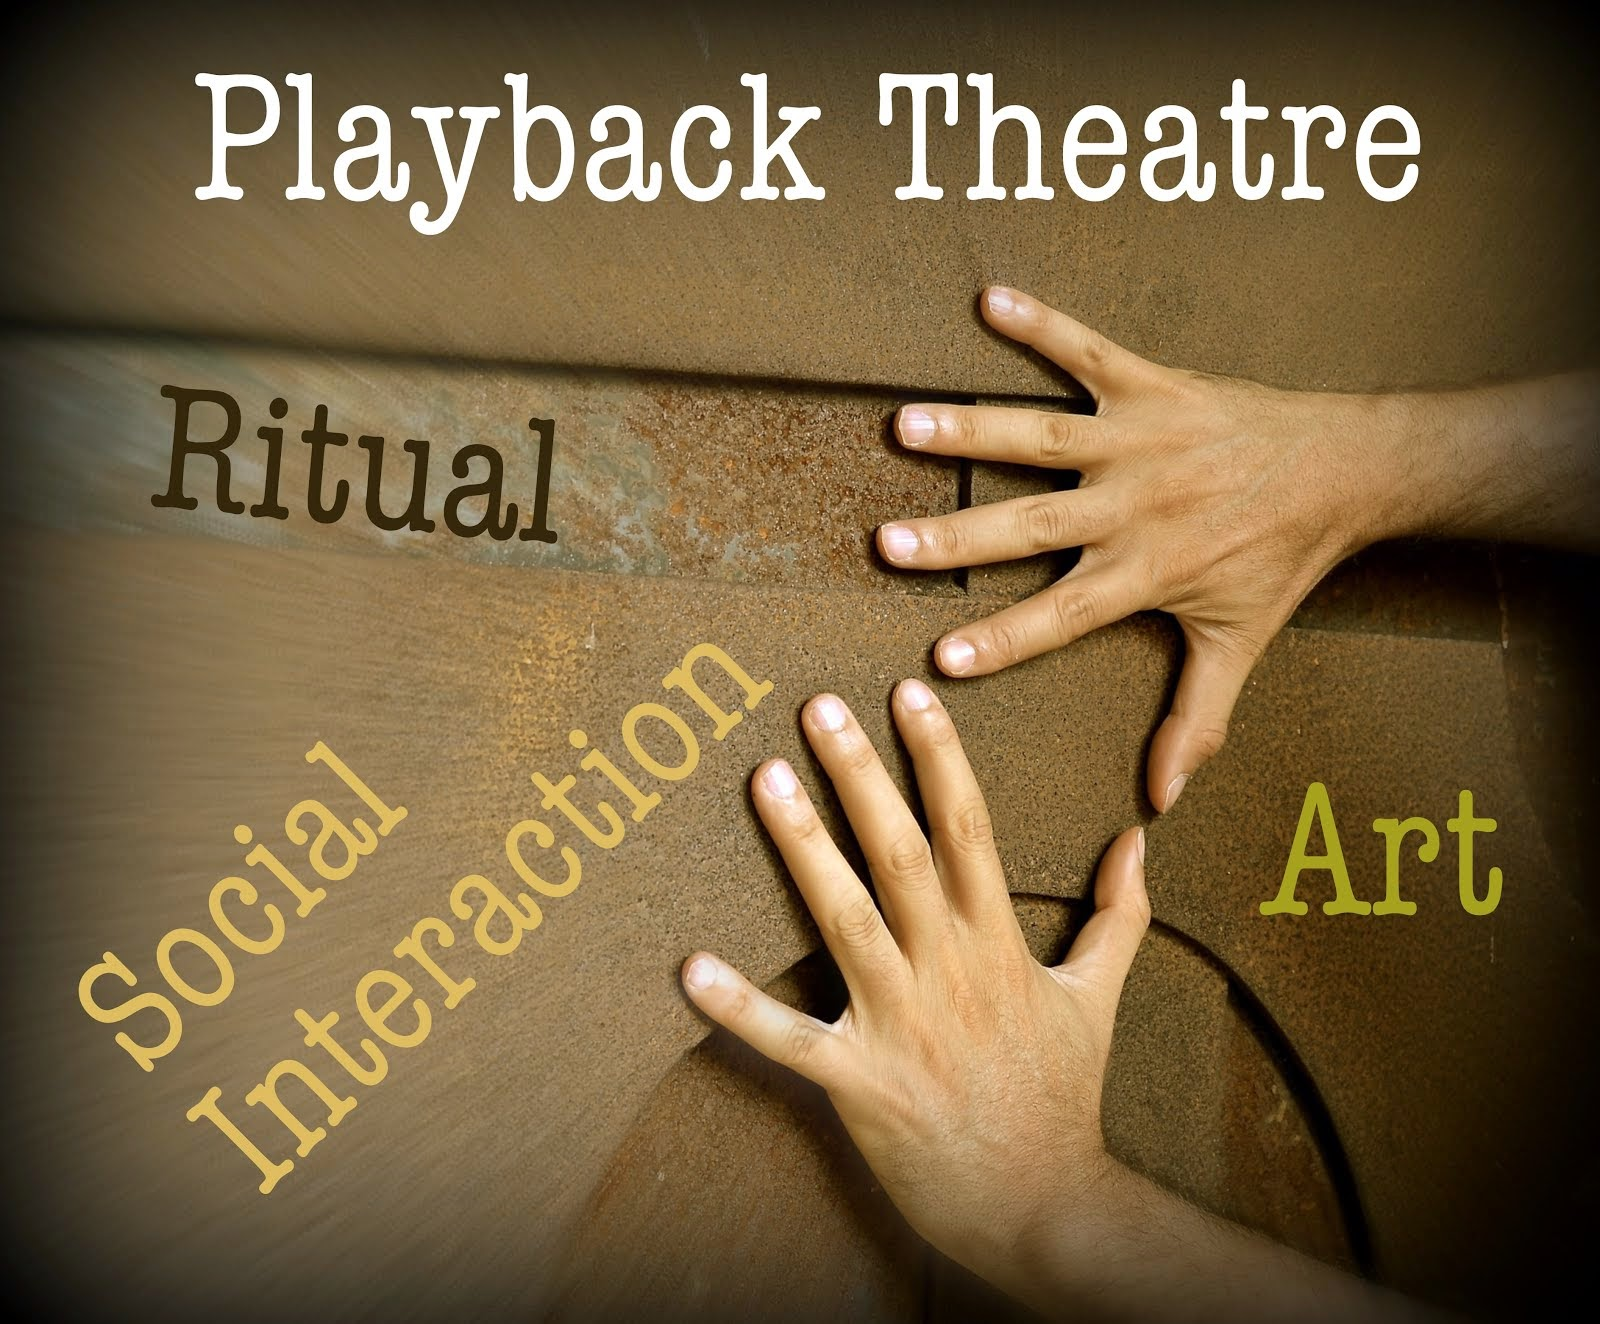 NEW INTERVIEW: PLAYBACK THEATRE with Roger Foster